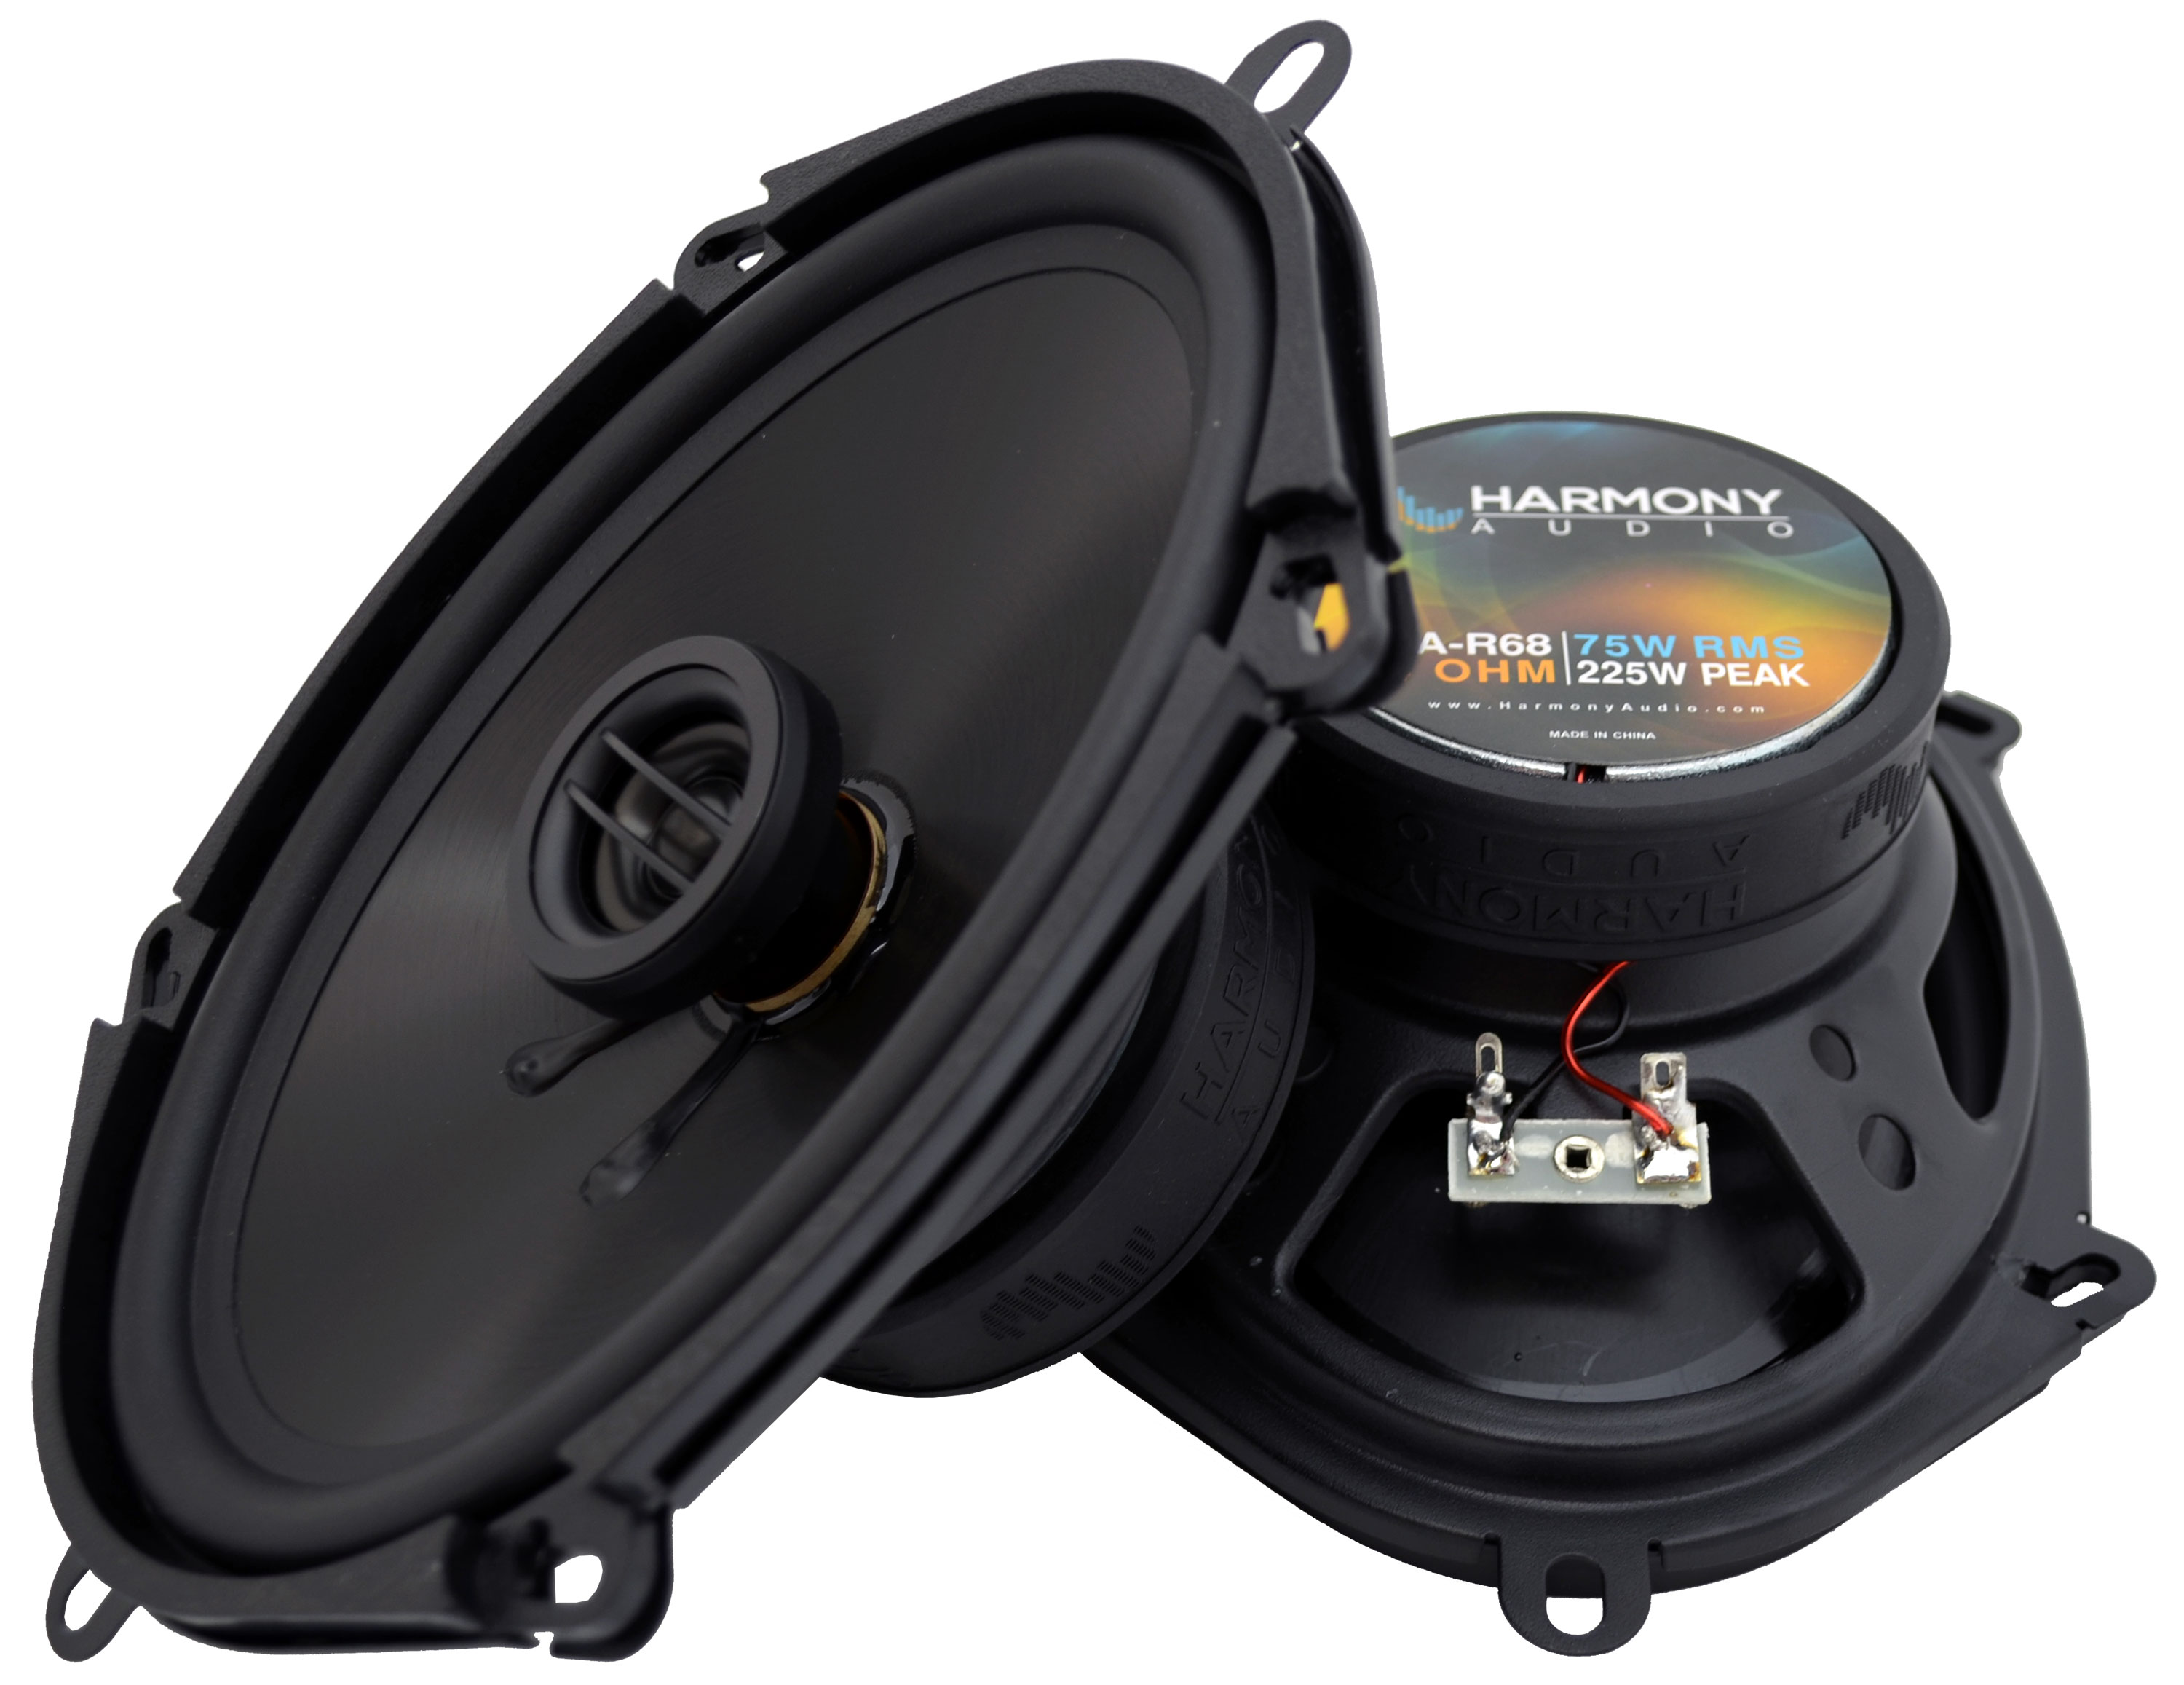 Fits Ford Taurus X 2008-2009 Front Door Replacement Harmony HA-R68 Speakers New